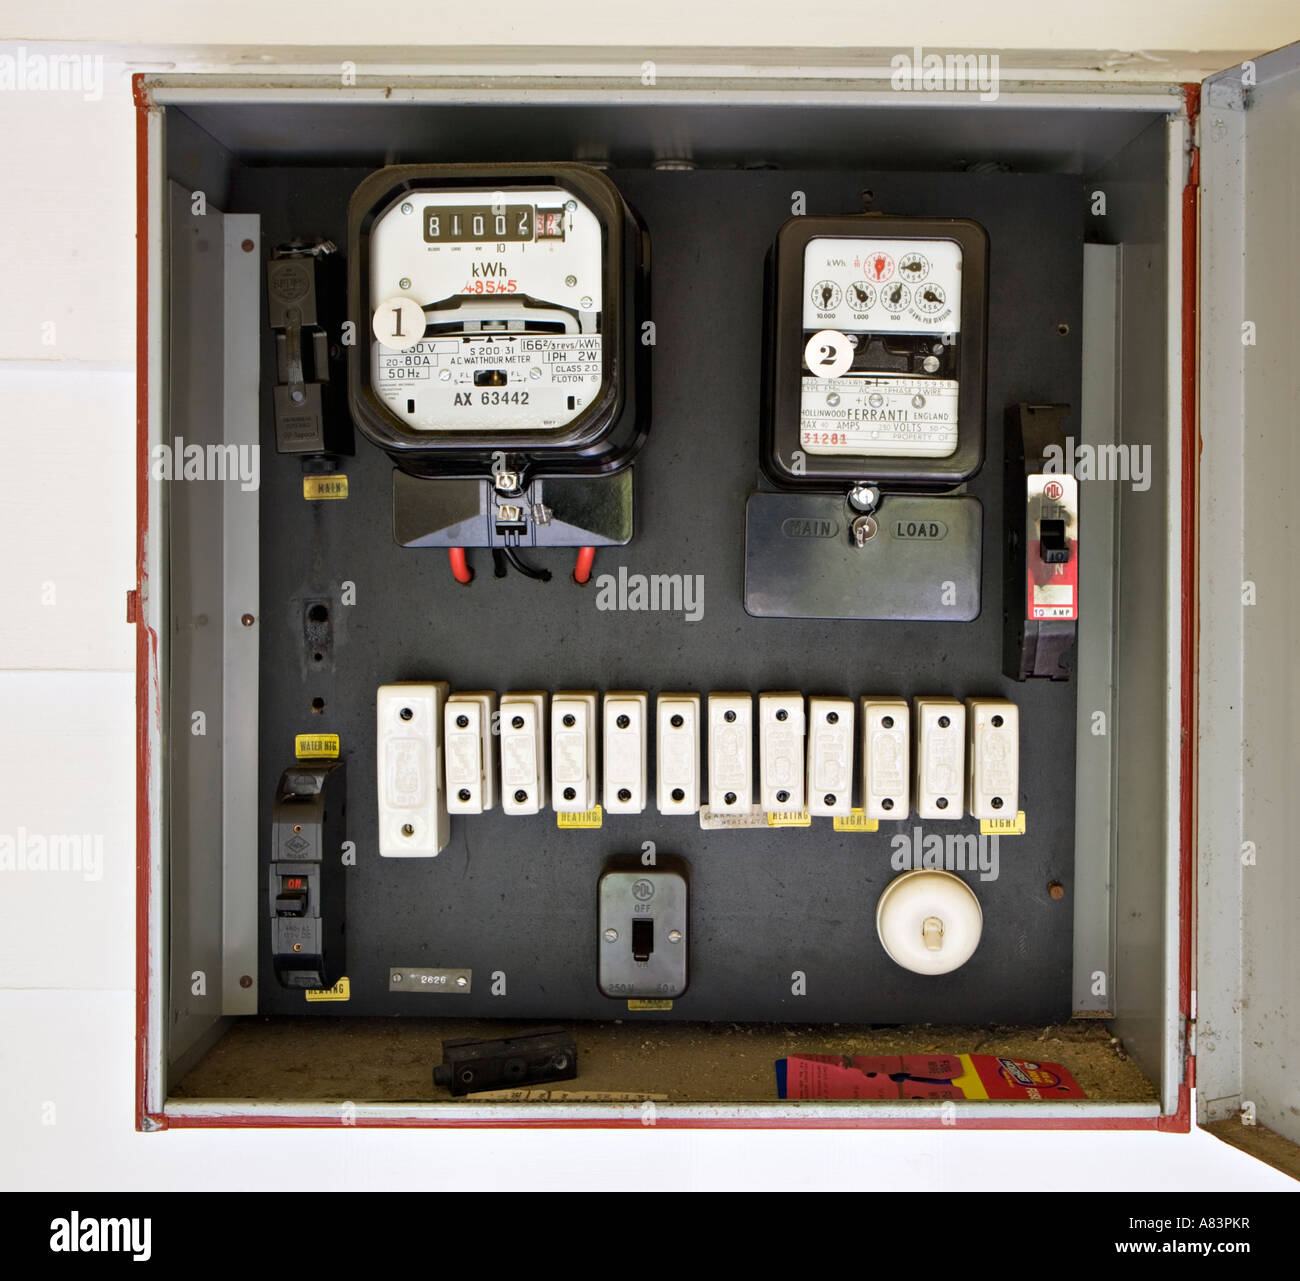 old electrical fuse box stock photos old electrical fuse box stock rh alamy com old fuse box diagram old fuse box types